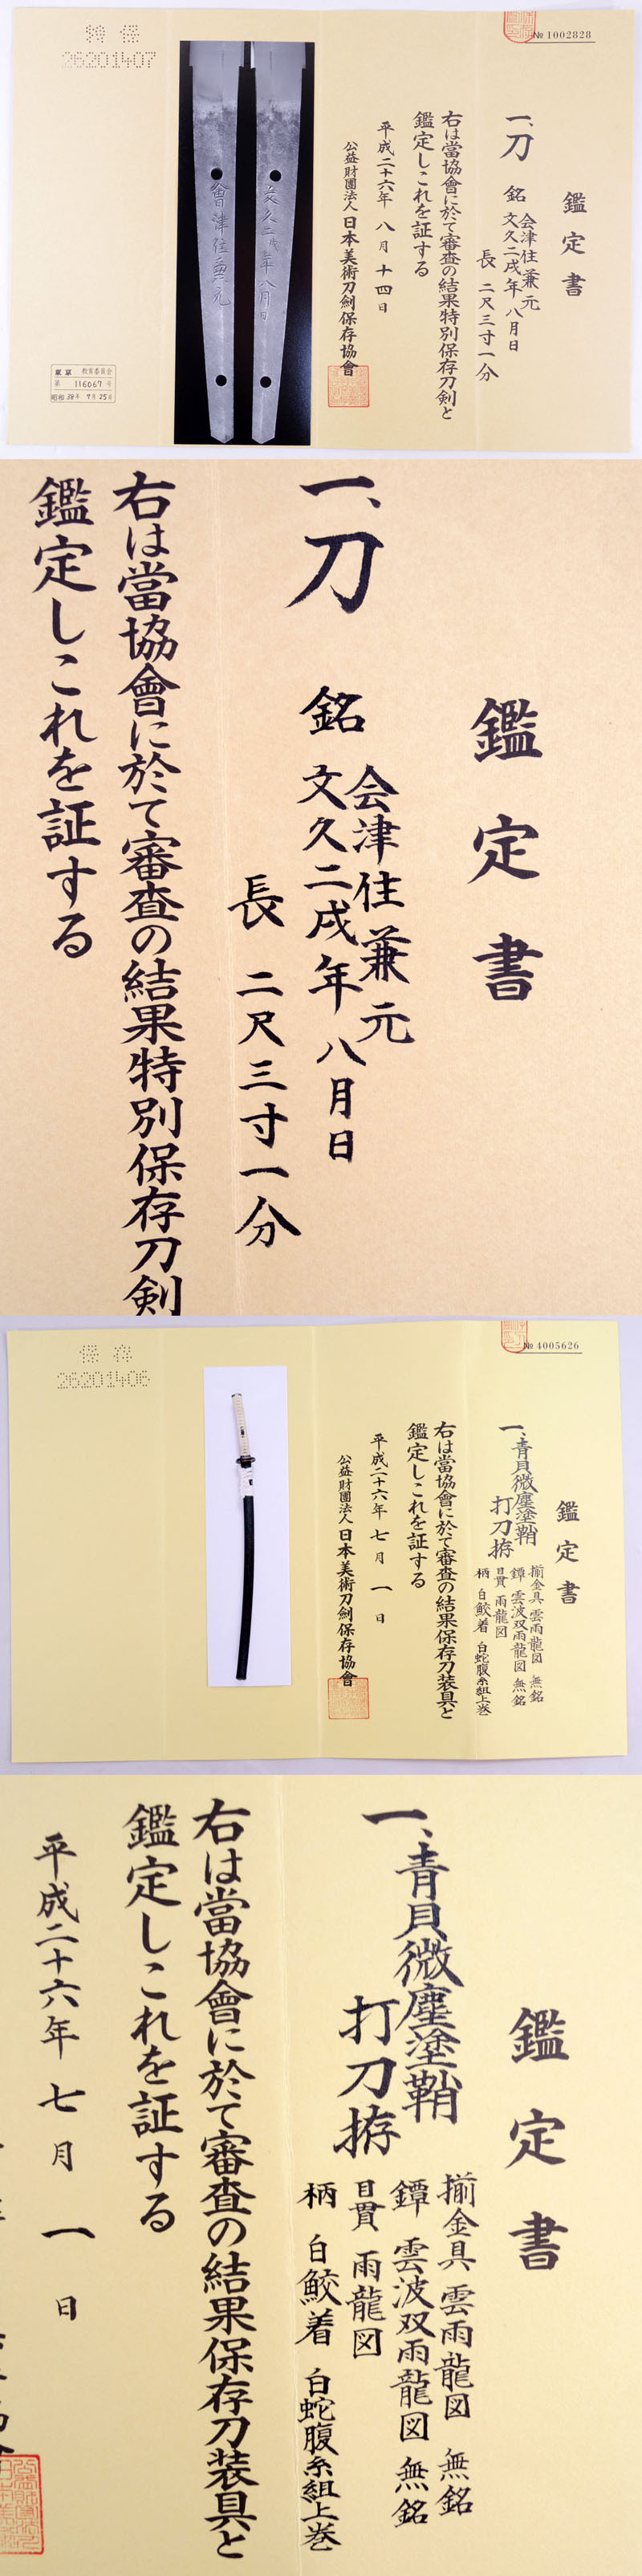 会Tsu住兼元 Picture of Certificate